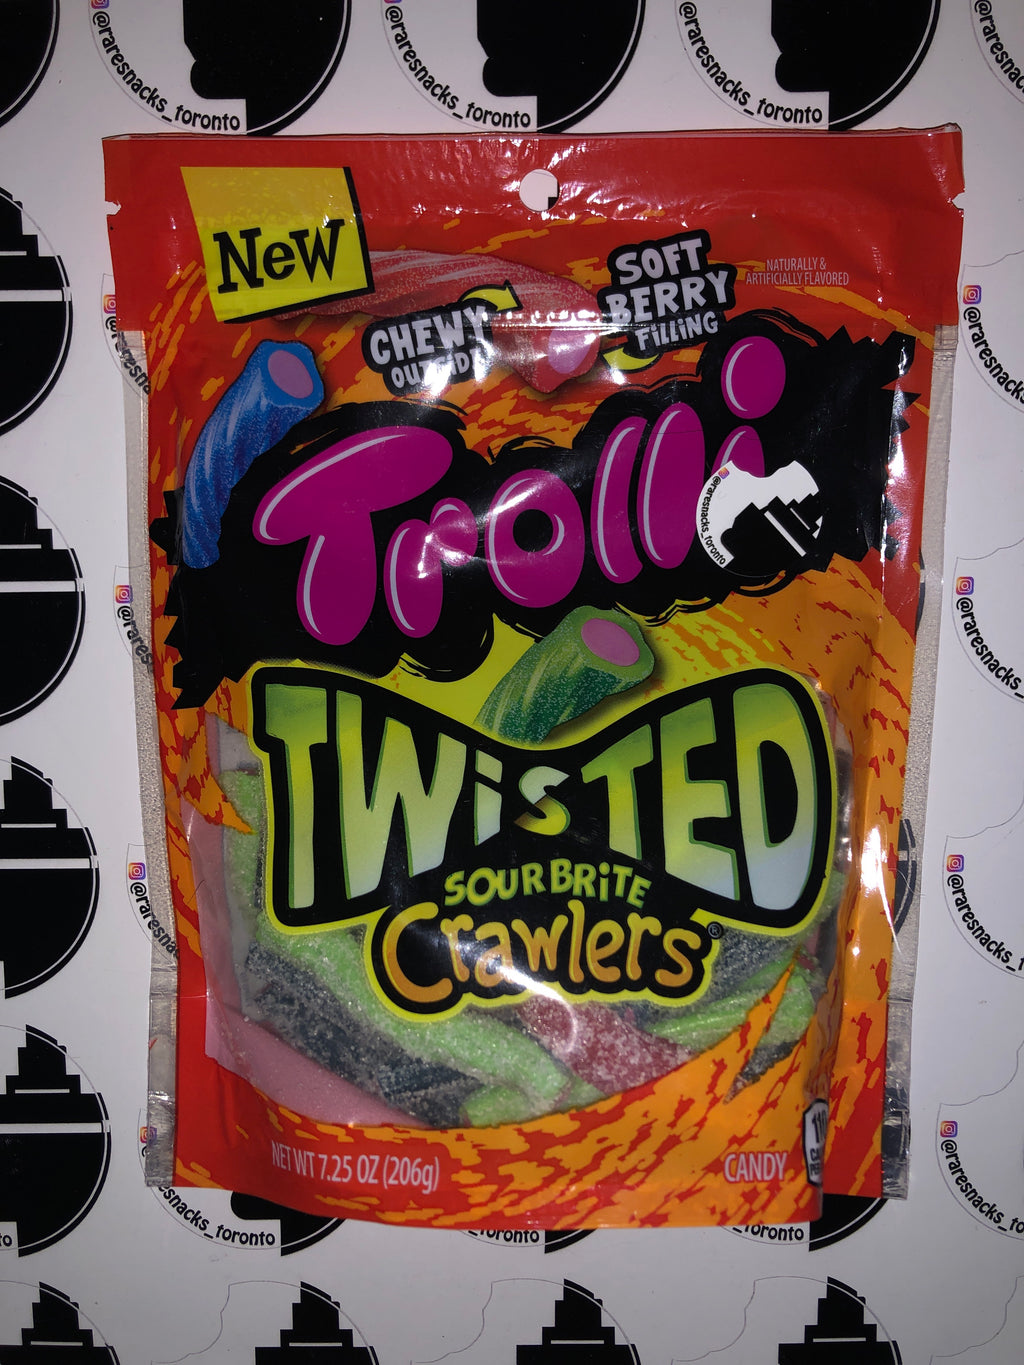 Trolli Twisted Sour Brite Crawler